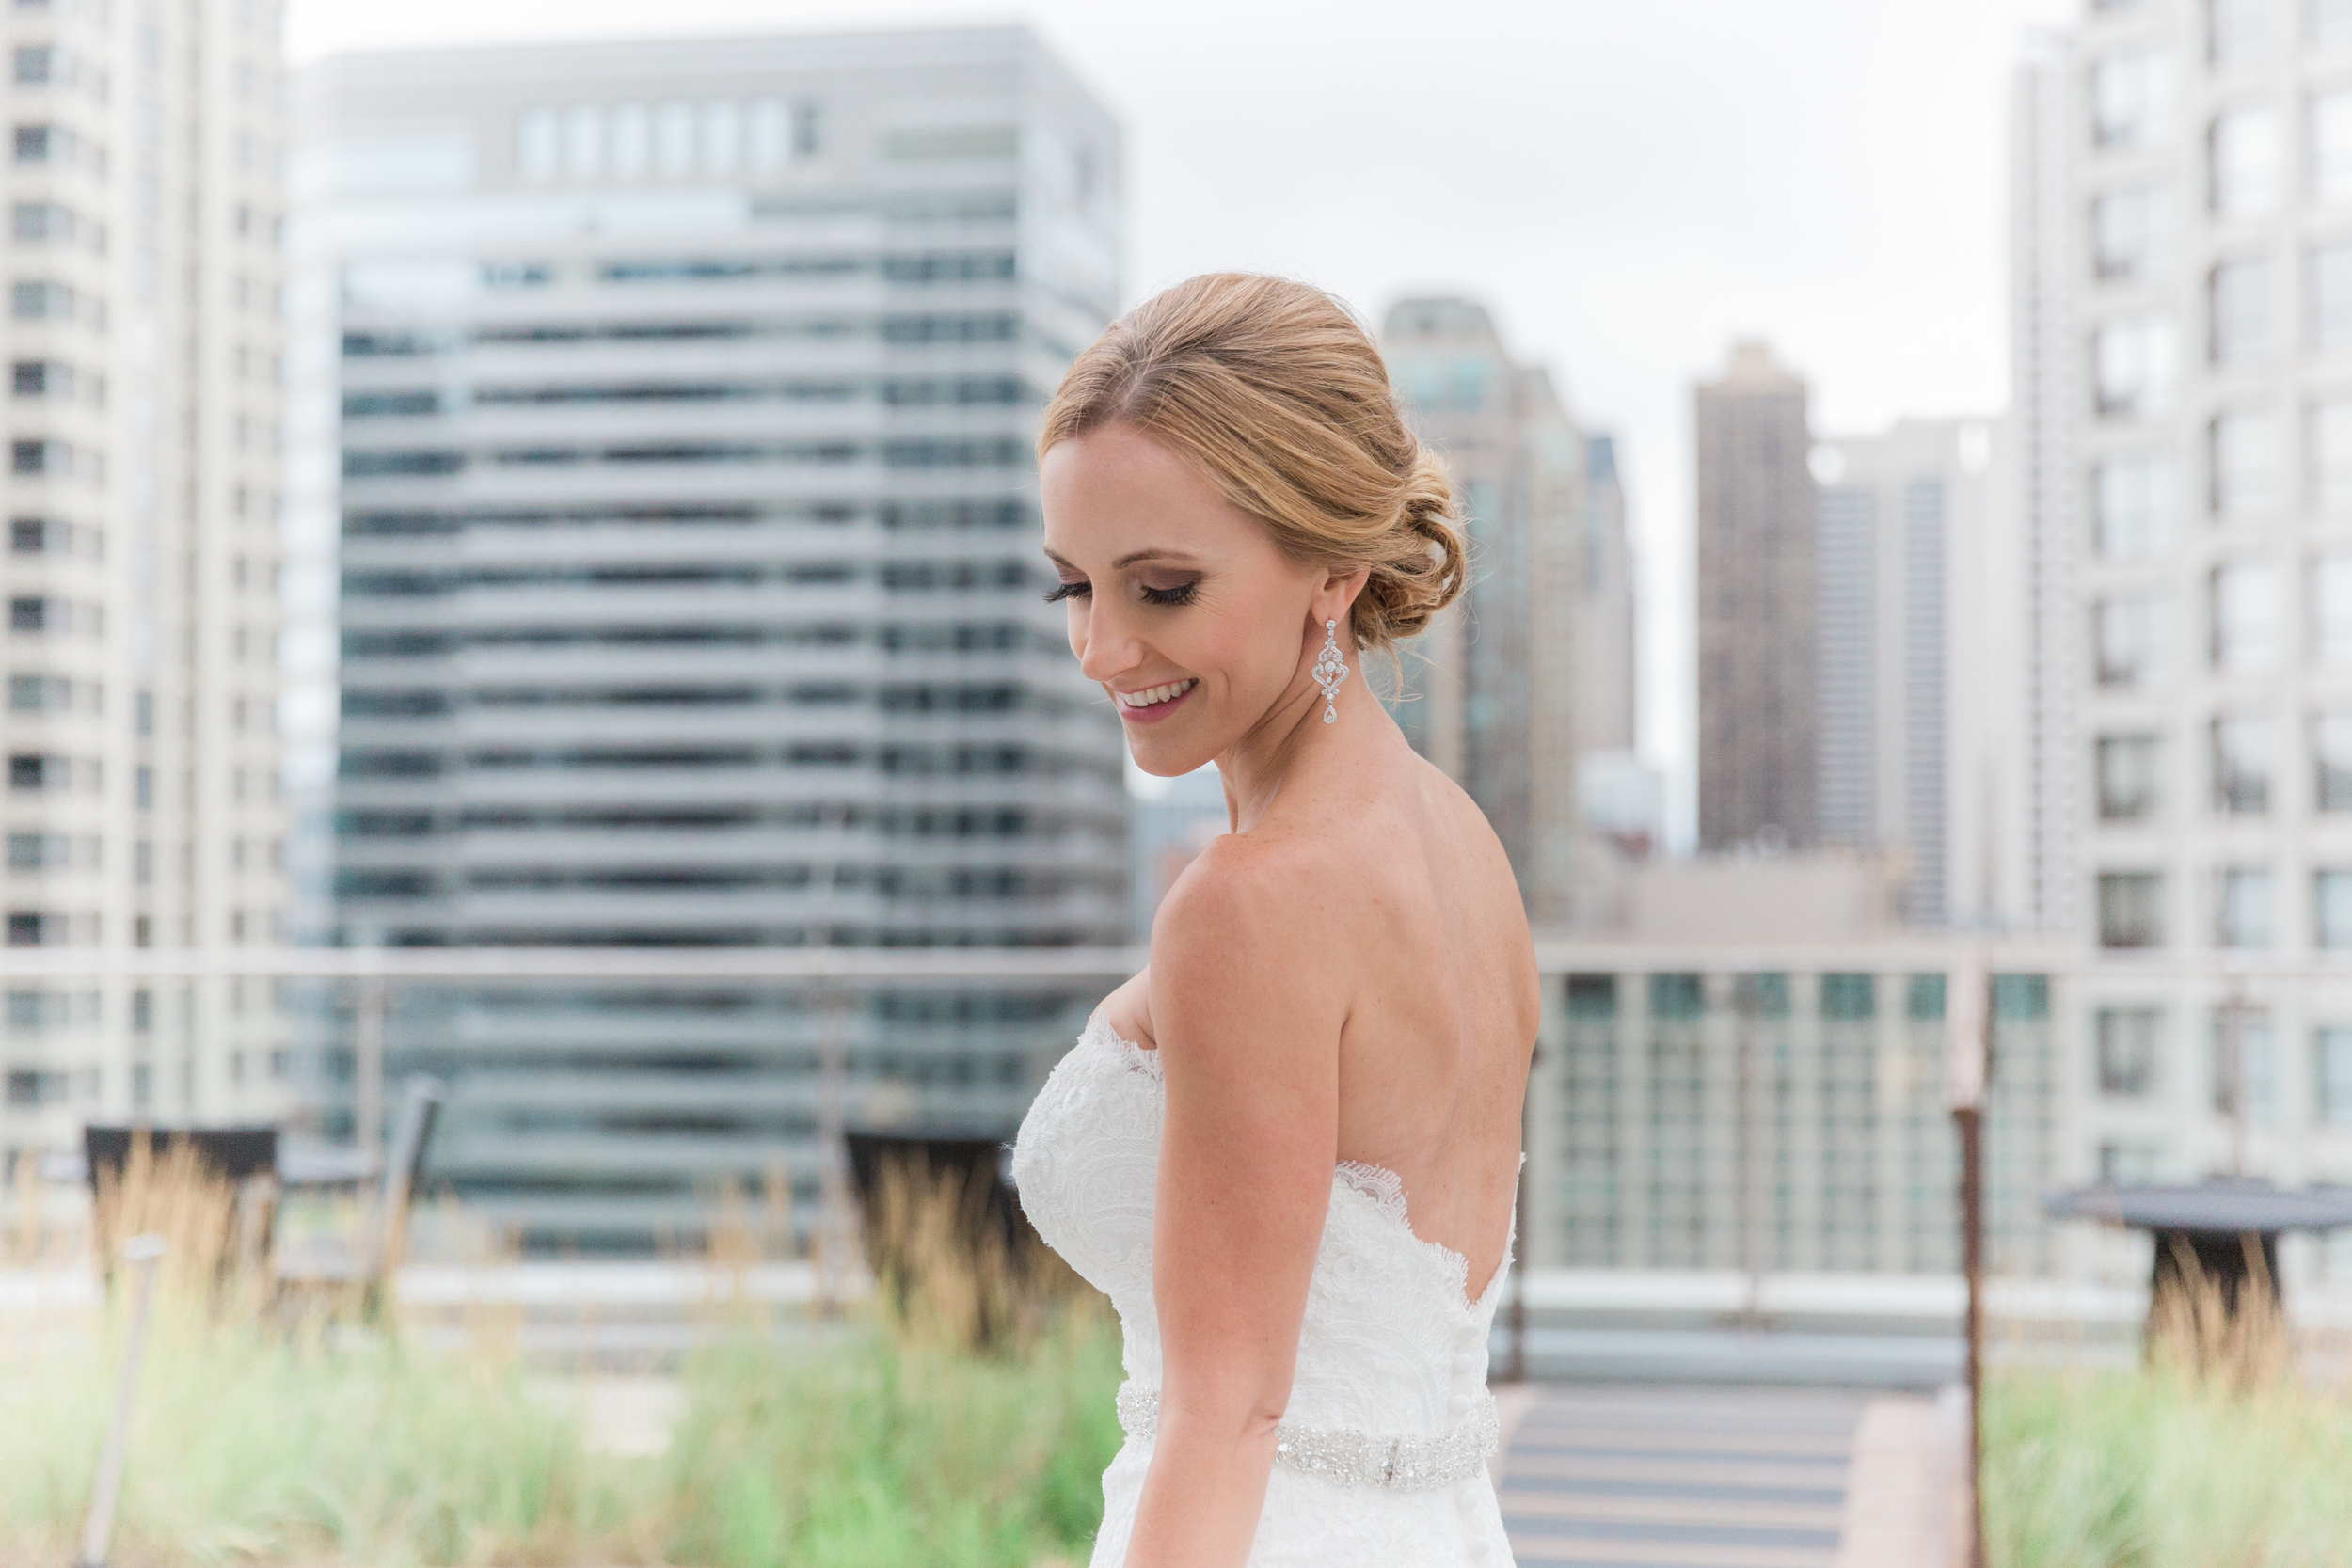 Bonphotage Wedding Photograph - Trump Hotel Chicago